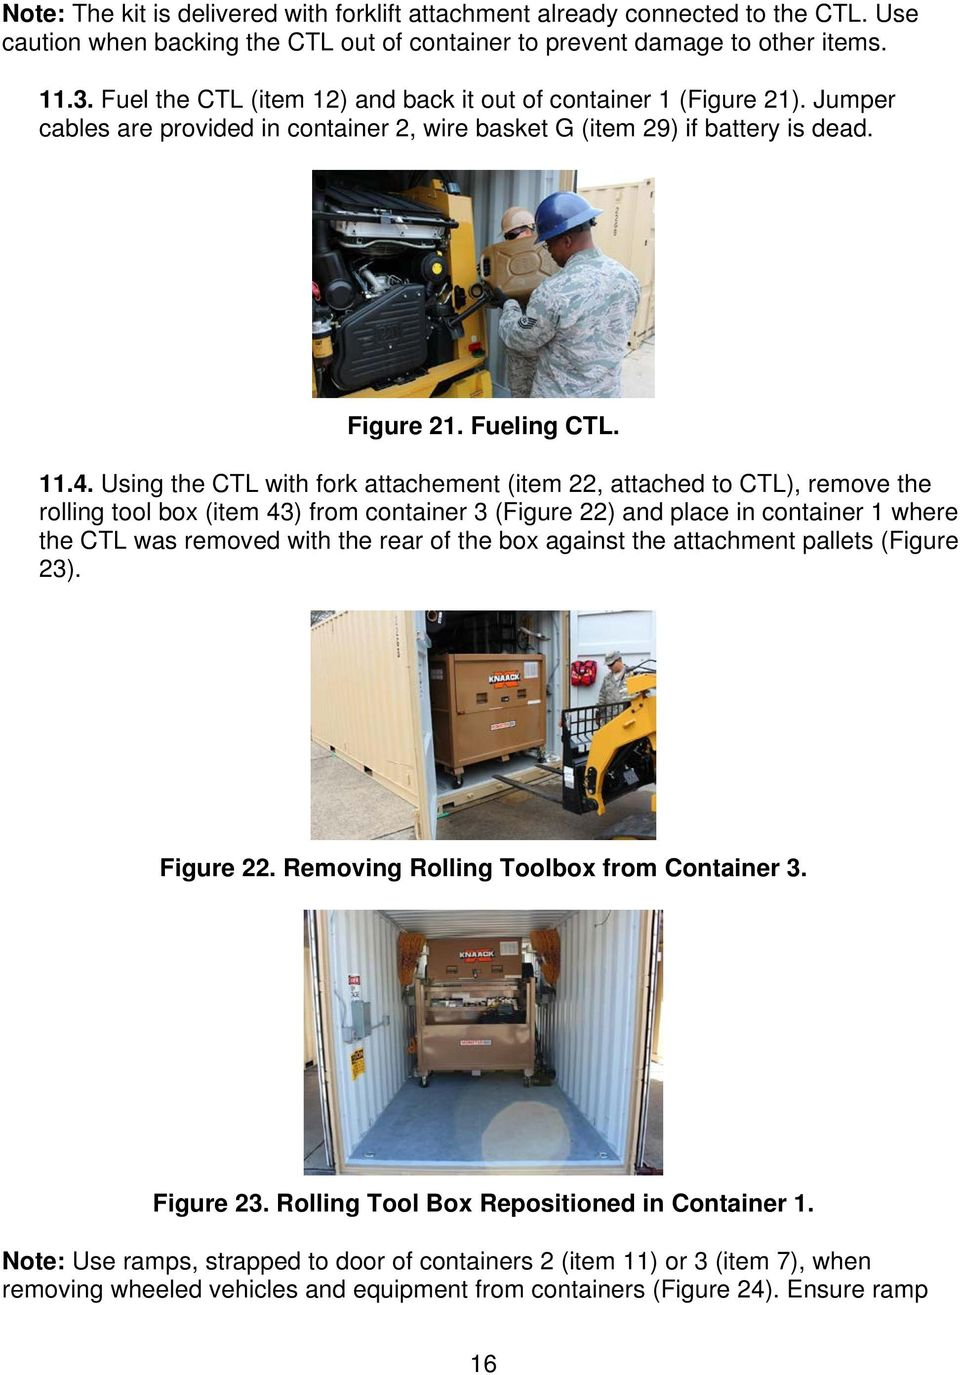 Using the CTL with fork attachement (item 22, attached to CTL), remove the rolling tool box (item 43) from container 3 (Figure 22) and place in container 1 where the CTL was removed with the rear of